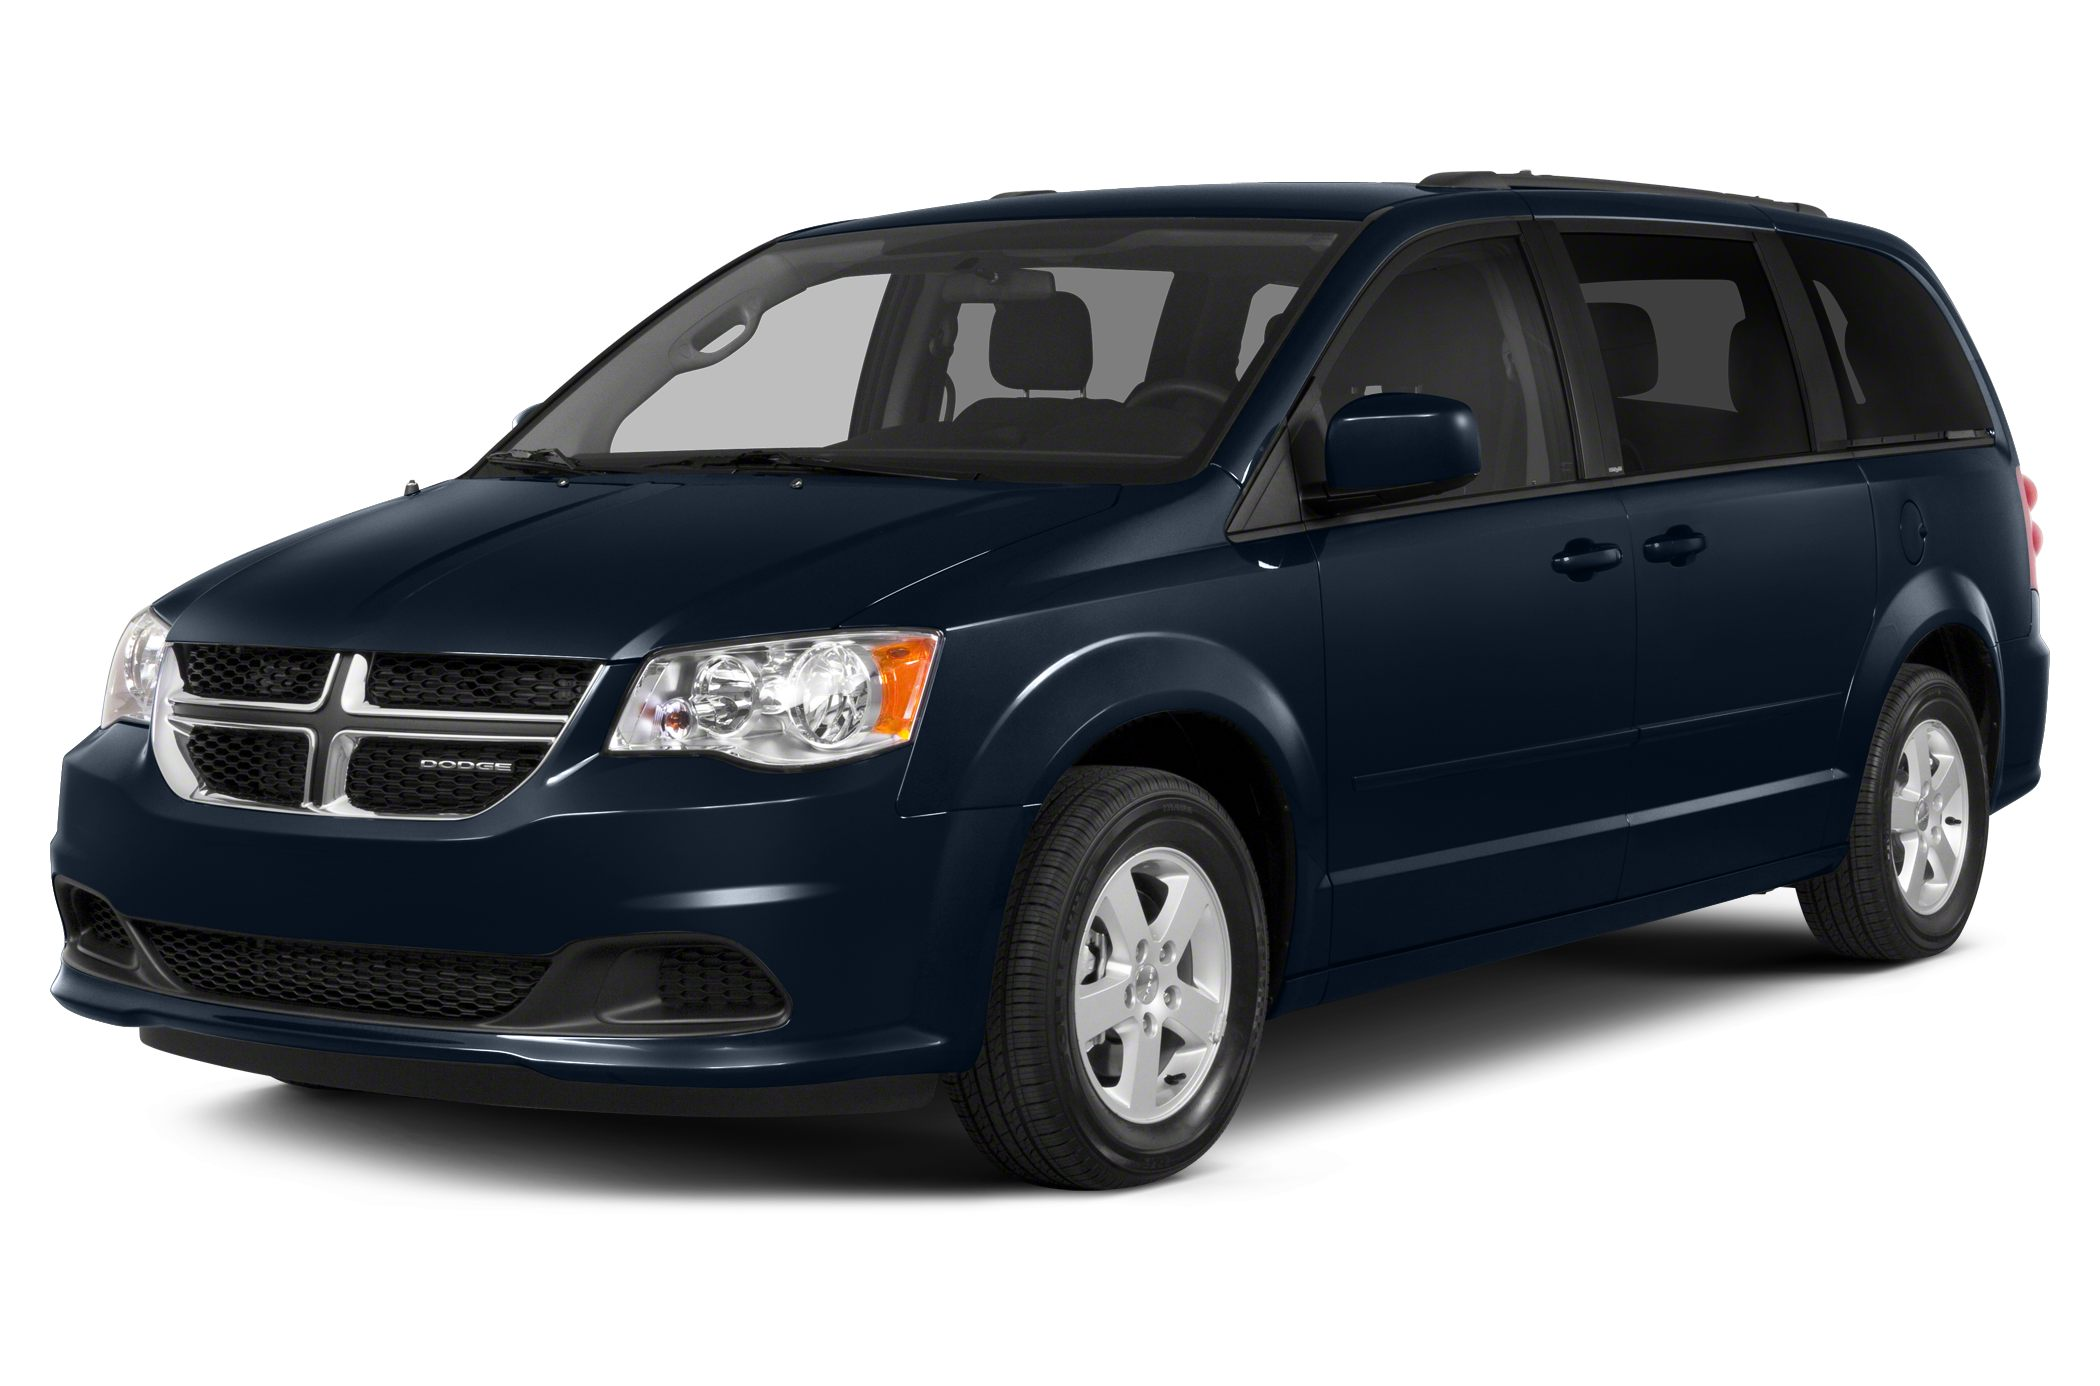 2015 Dodge Grand Caravan AVP/SE Minivan for sale in Watertown for $22,485 with 0 miles.